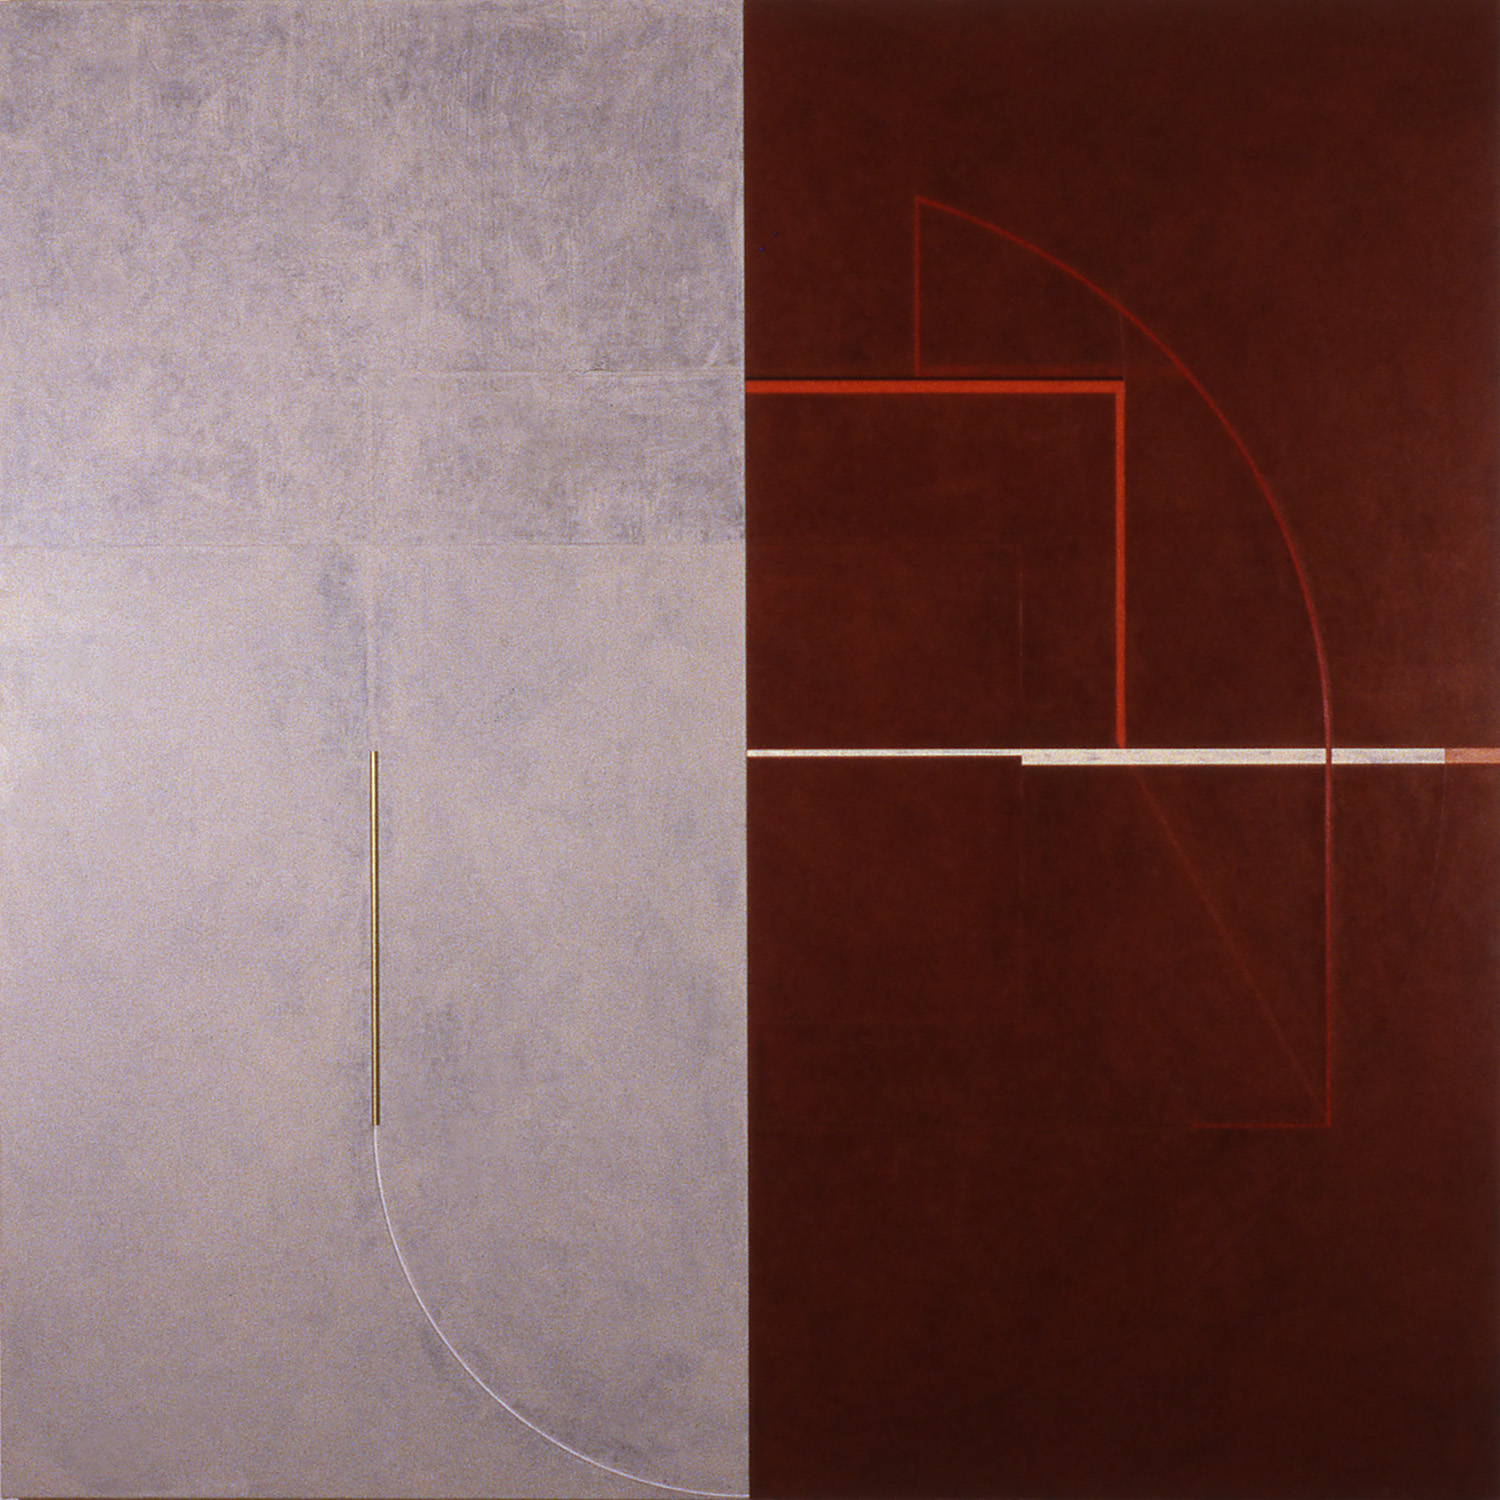 Janus XV, 1987, Acrylic on canvas over panels, 96 x 96 inches.